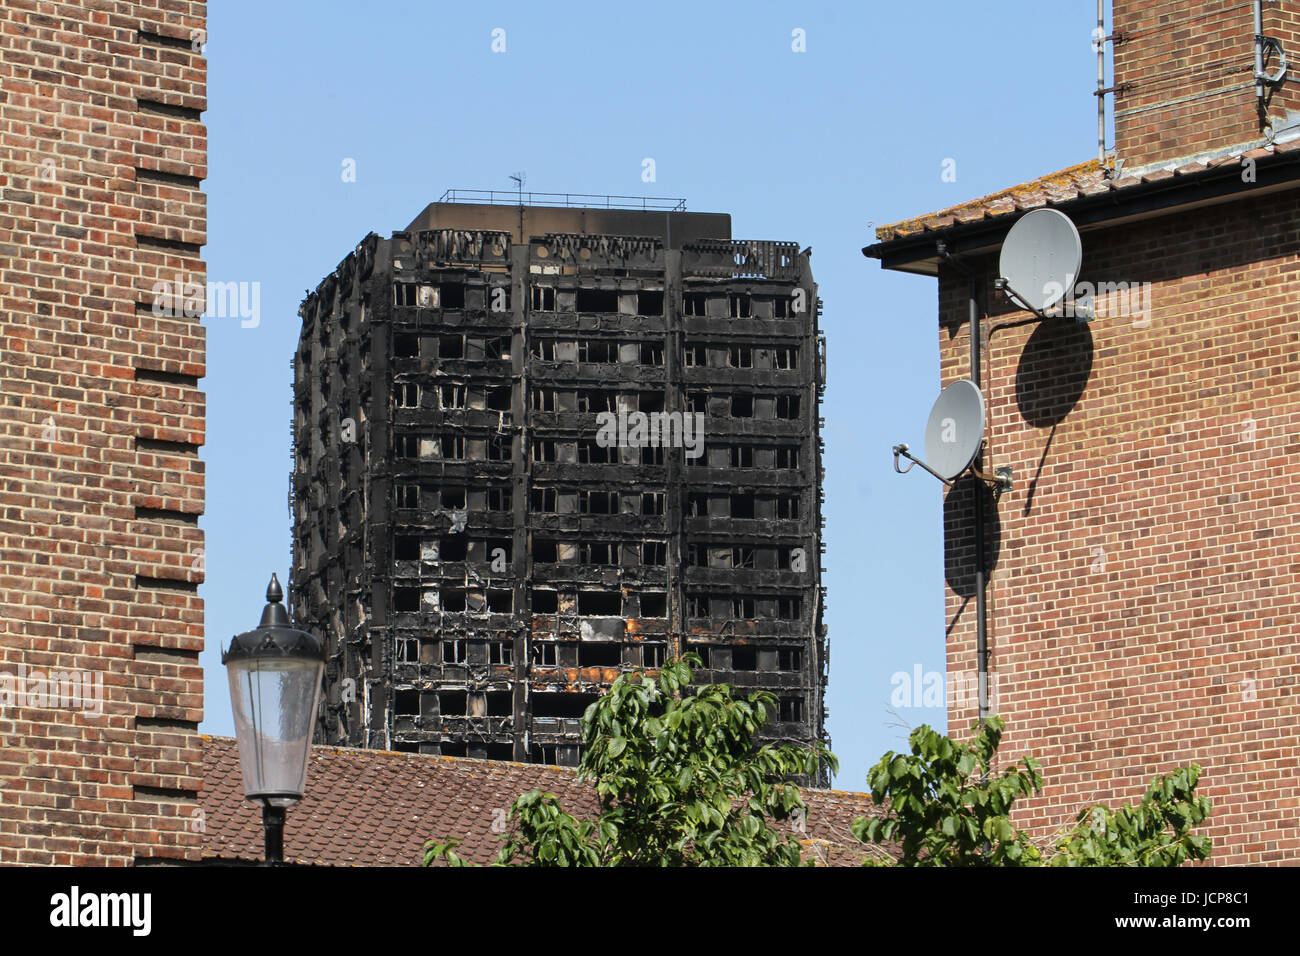 London, UK. 16th June 2017: The charred remains of the 24-storey block Grenfell tower block located in the borough - Stock Image